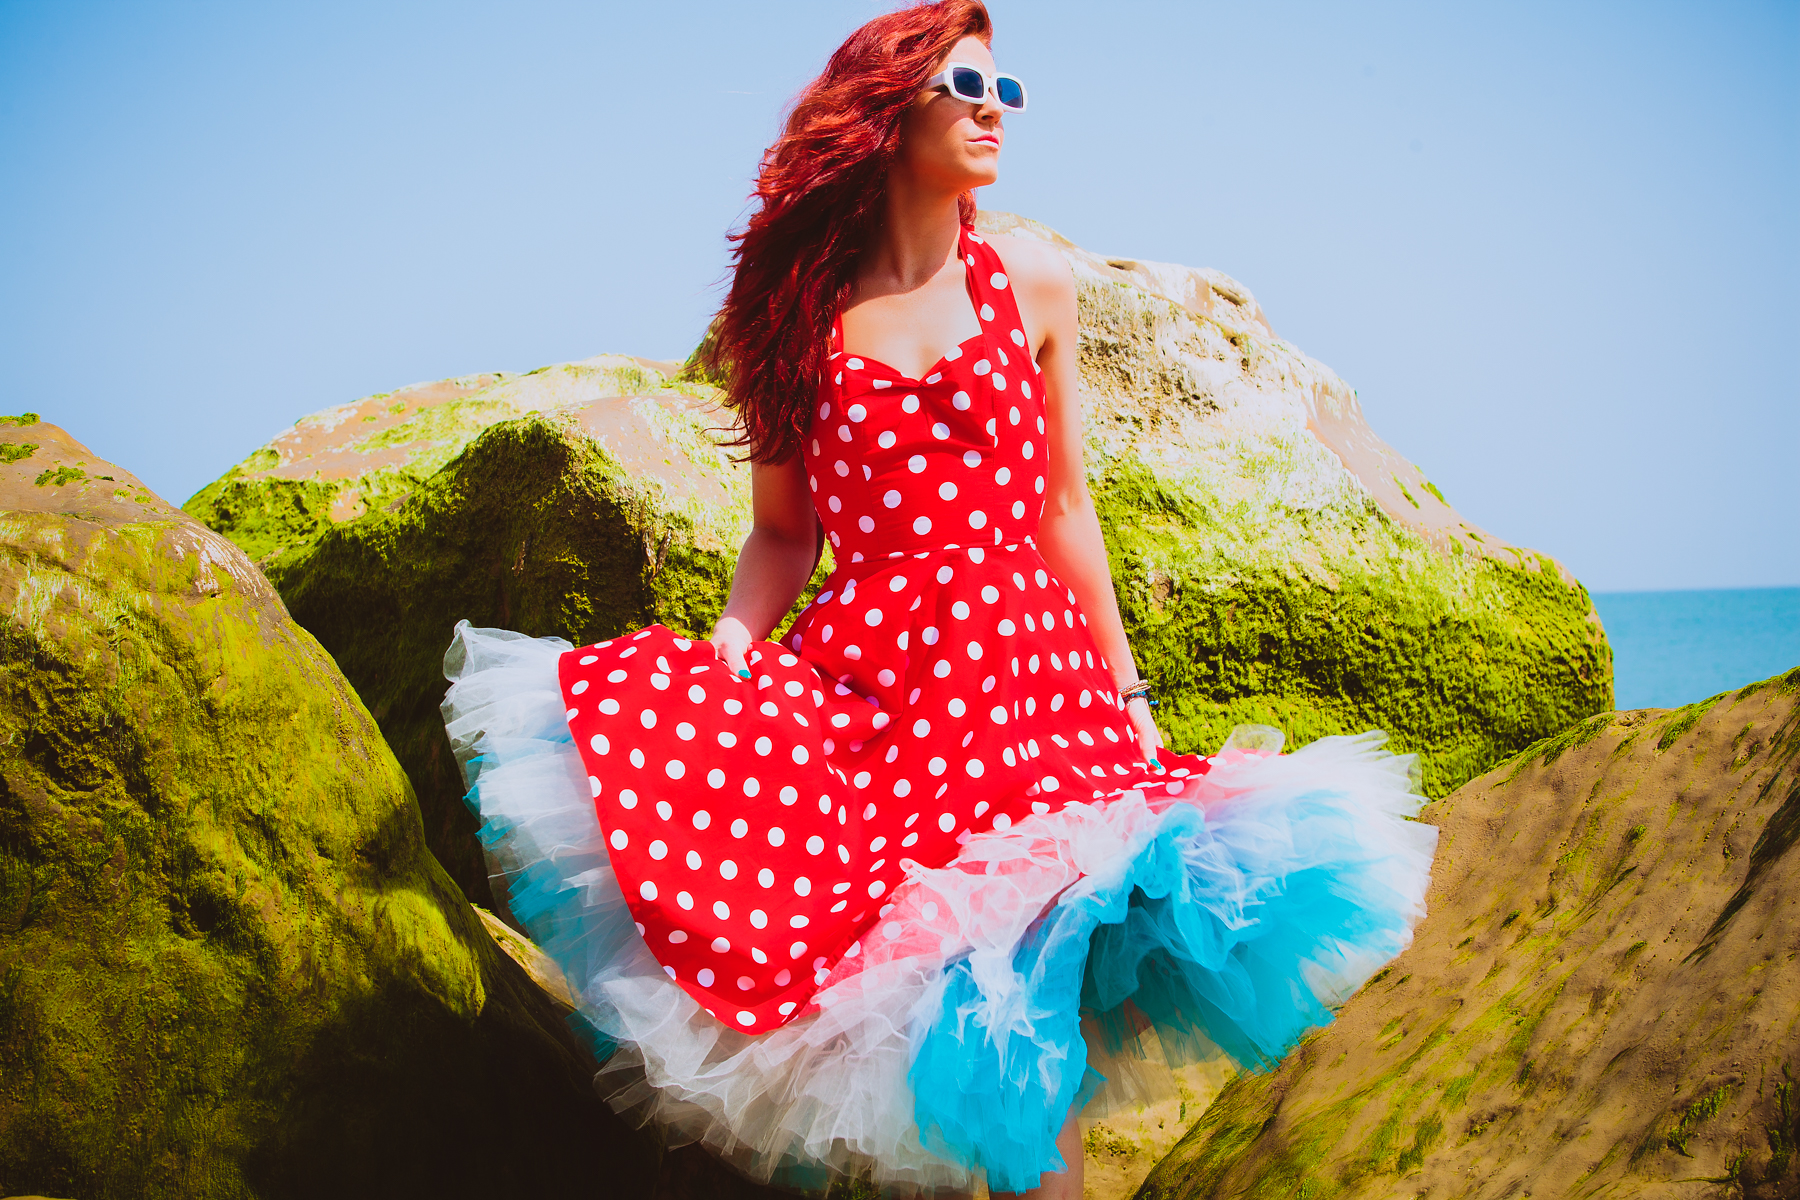 Woman with red hair in a red dress